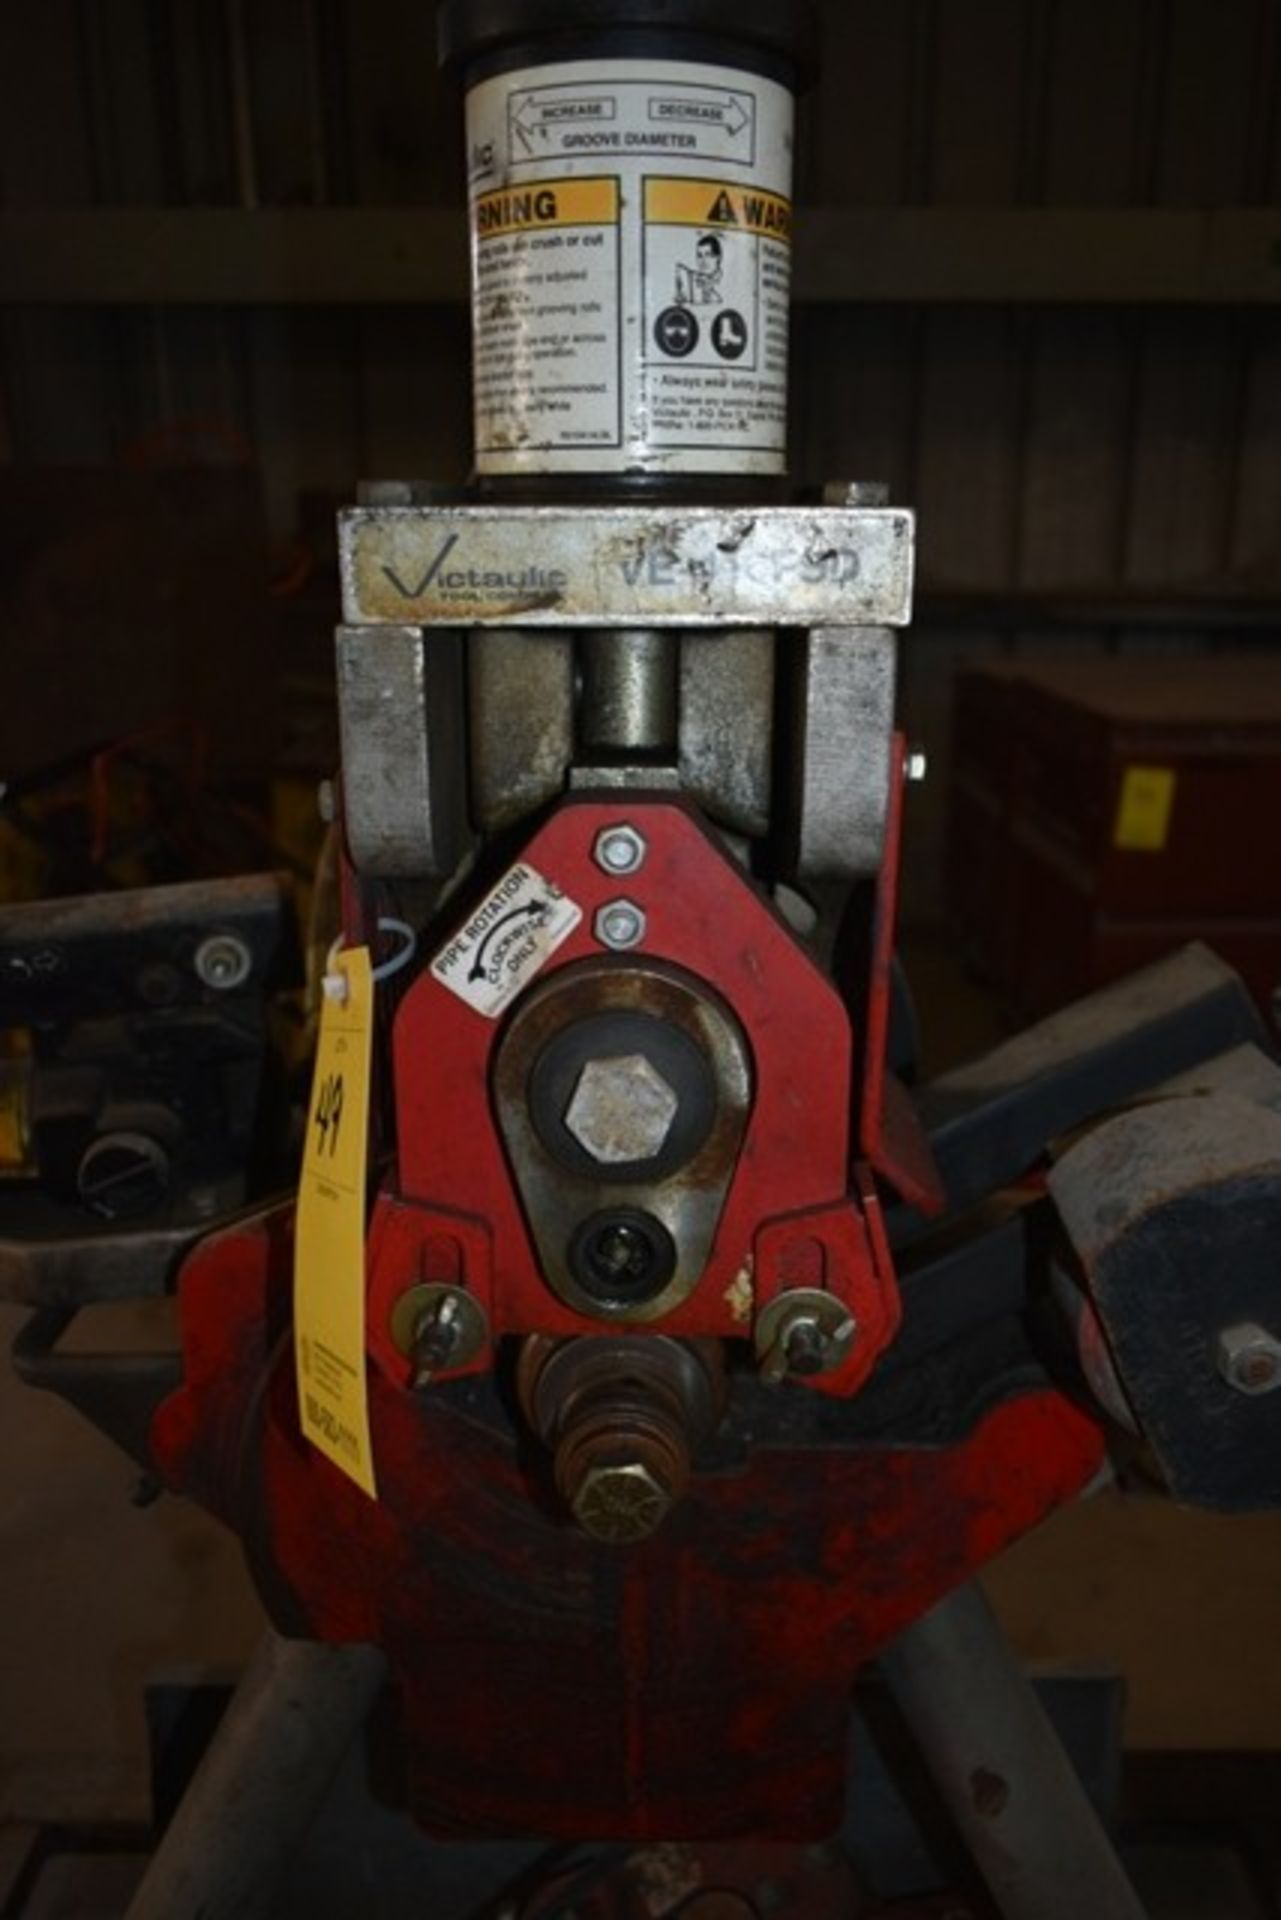 VICTAULIC VE-416FSO ROLE GROOVING MACHINE W/ ASSORT TOOLING - Image 2 of 4